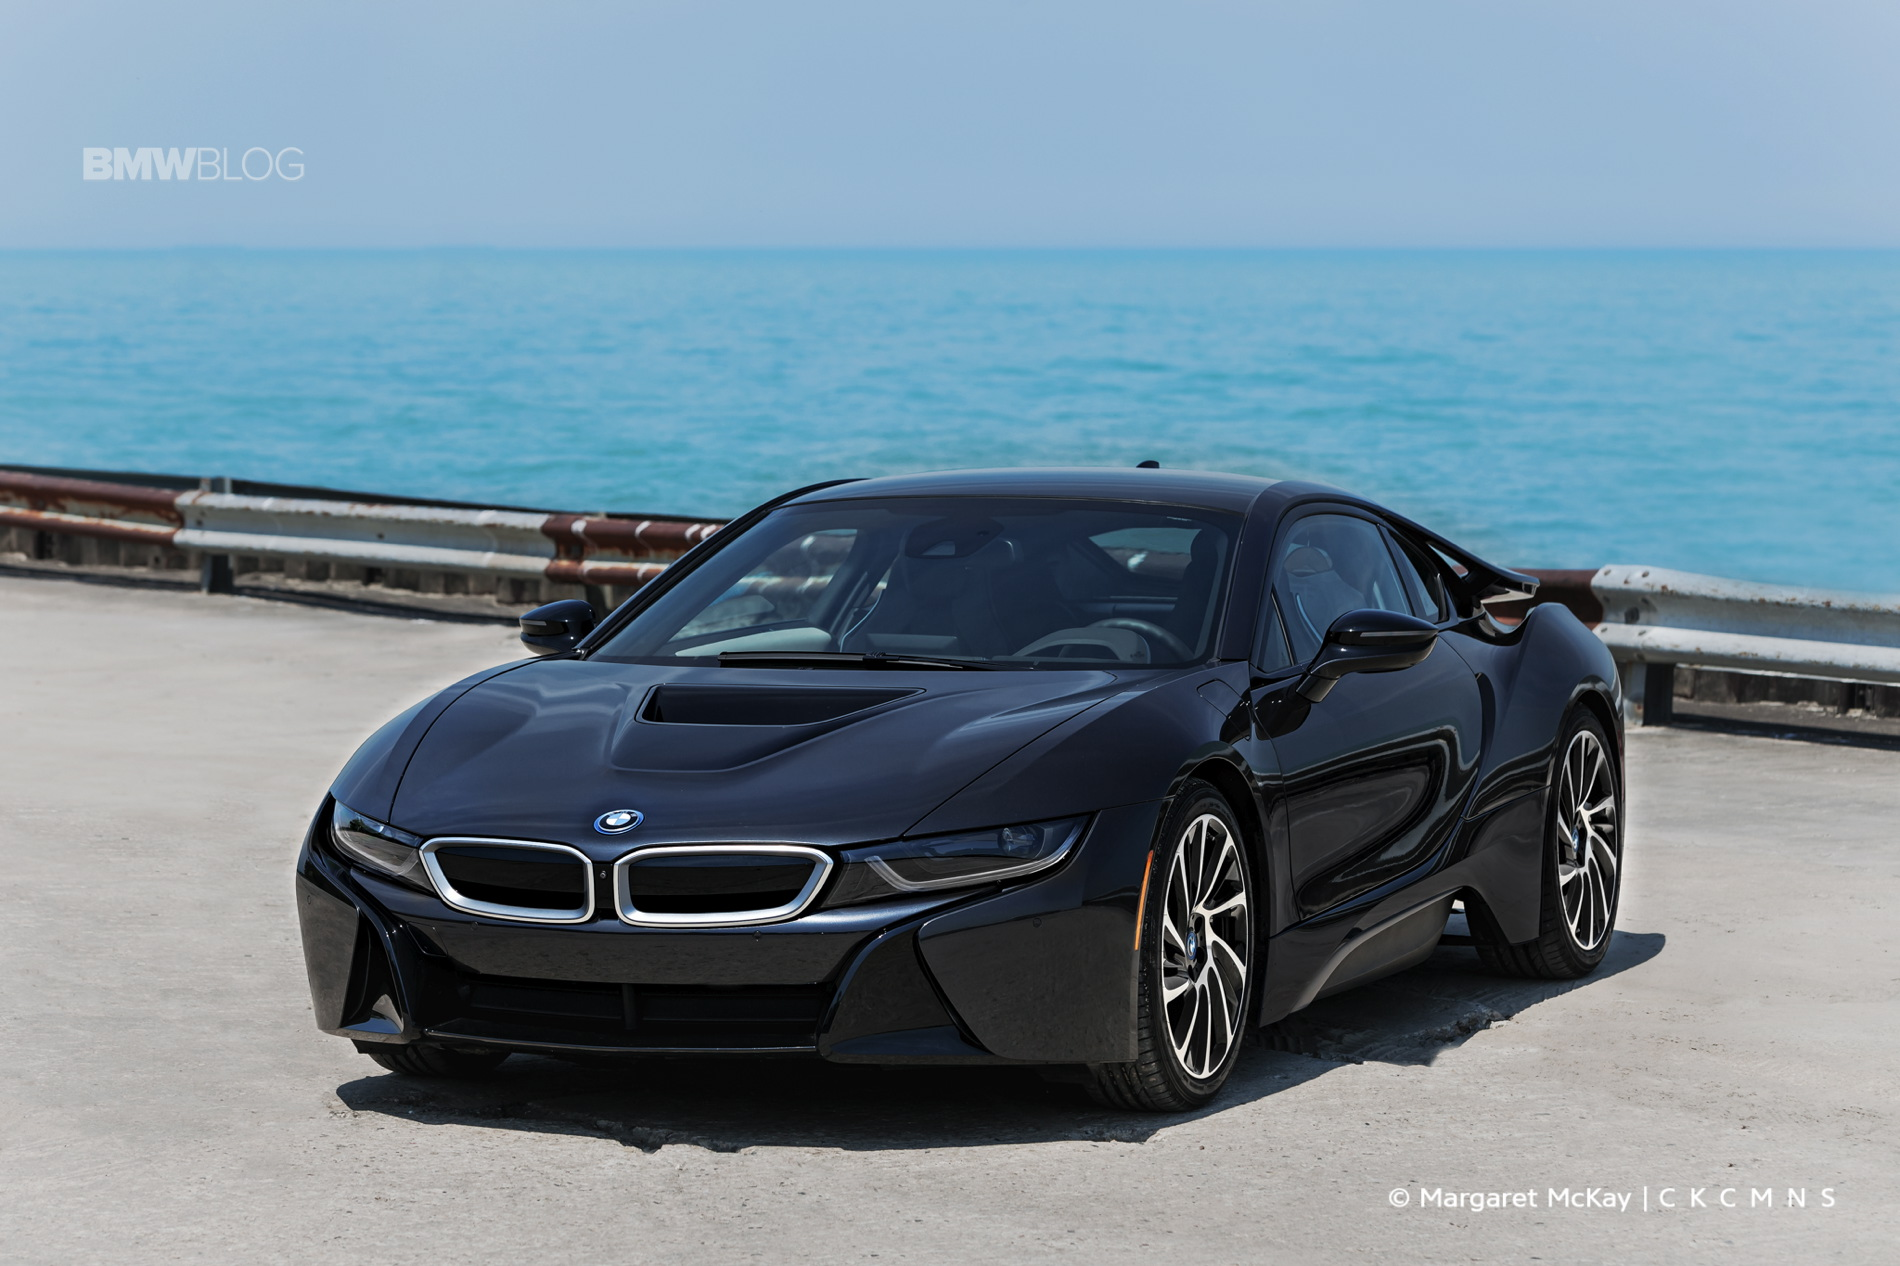 2015 BMW i8 - ROAD TEST